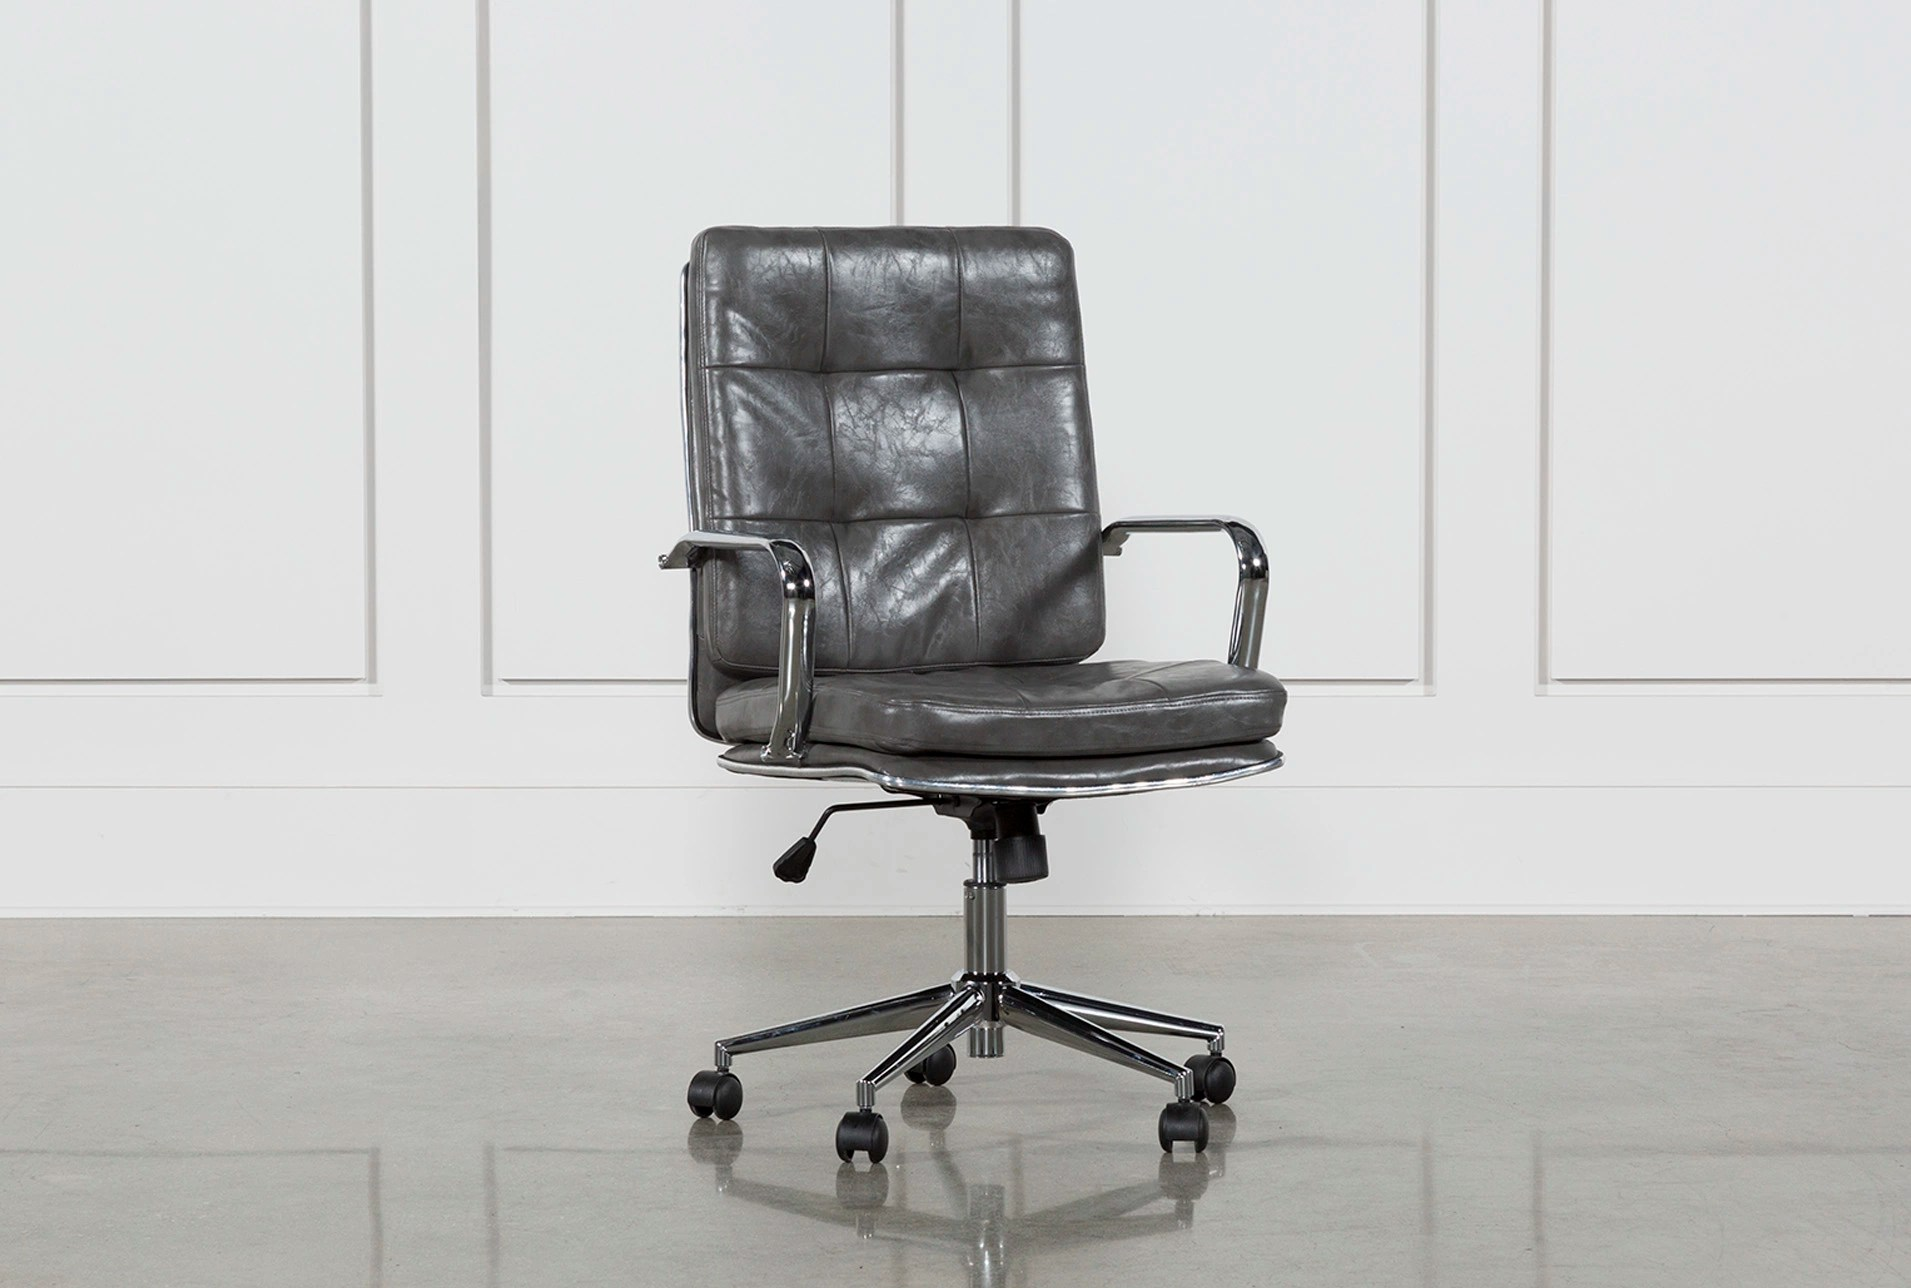 hight resolution of norton tufted office chair qty 1 has been successfully added to your cart